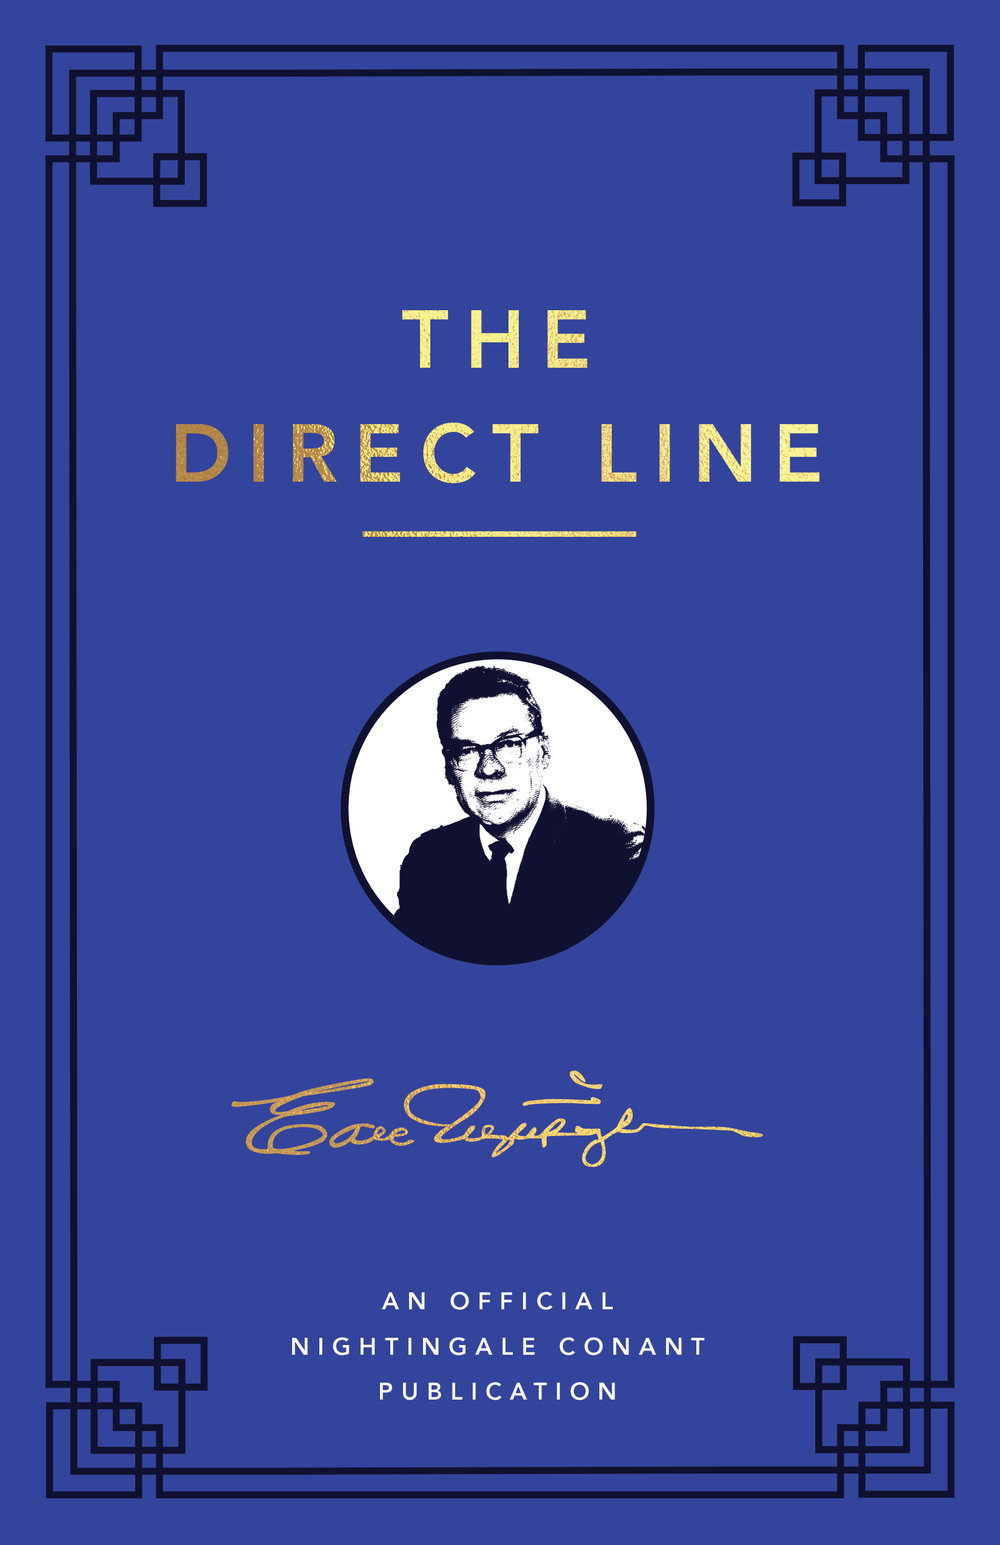 The Direct Line - By Earl Nightingale